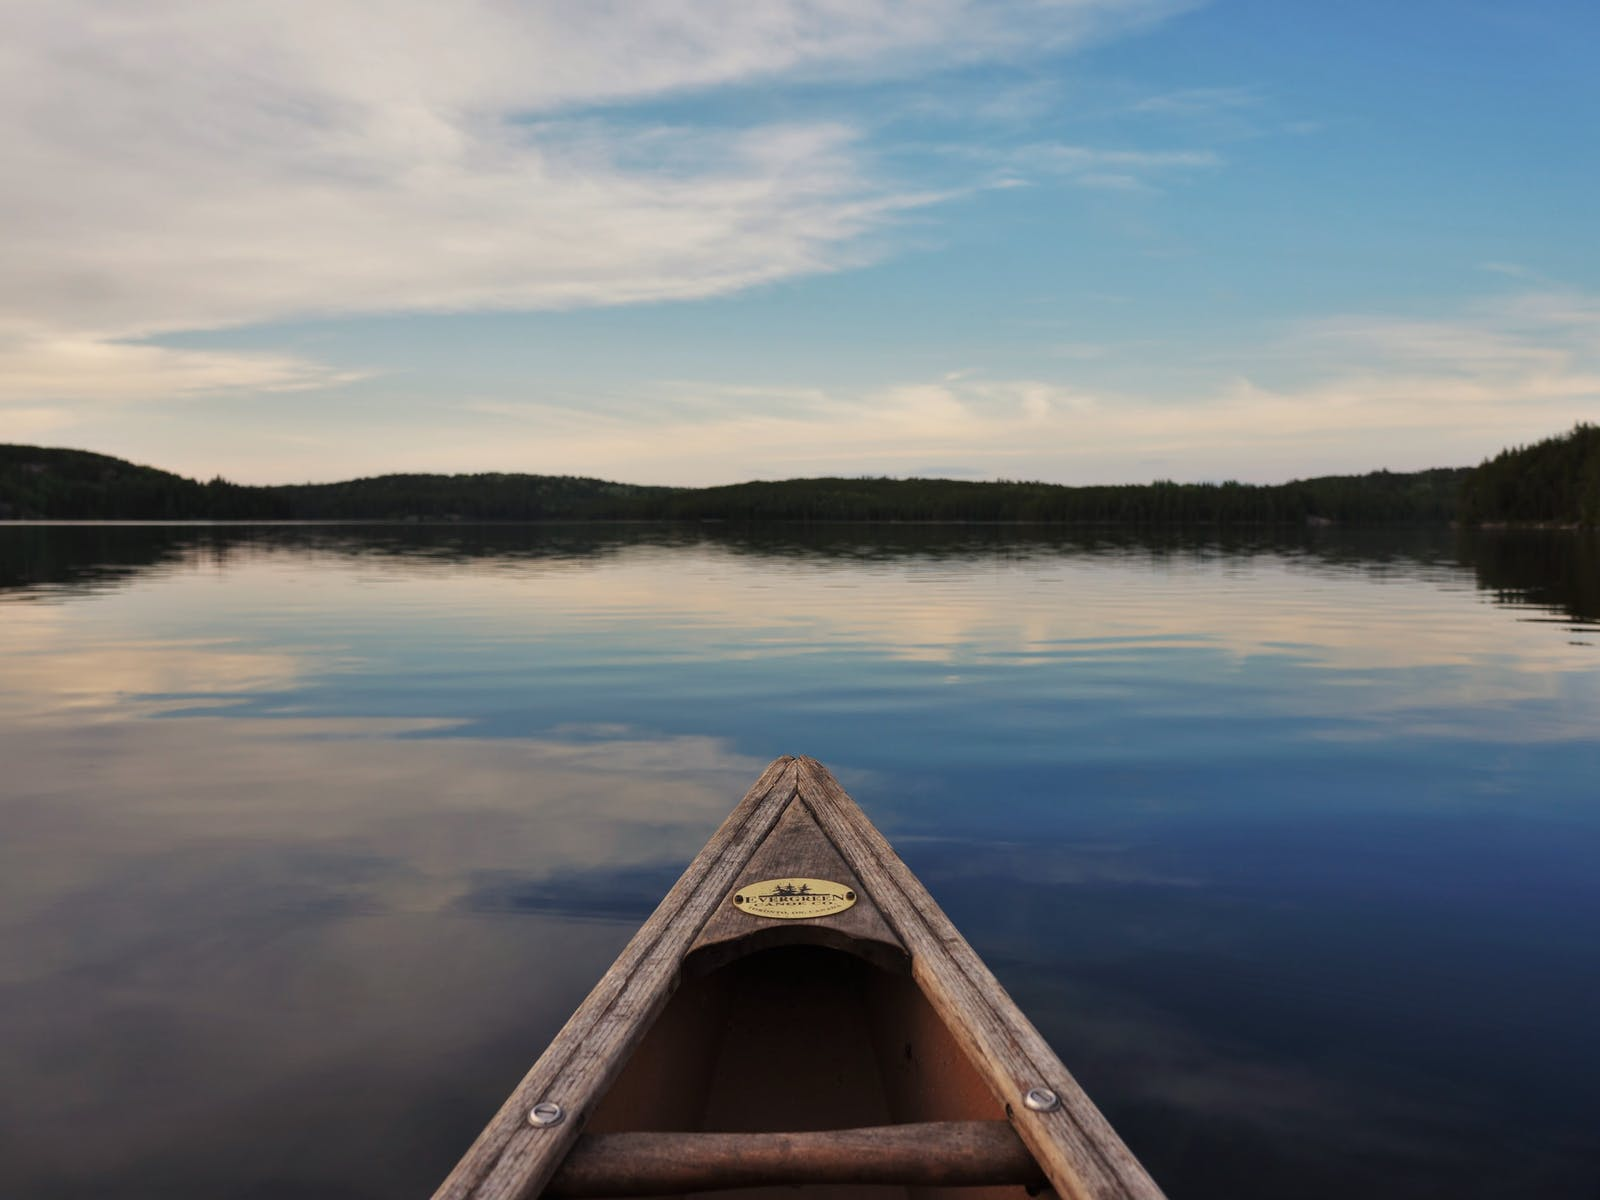 canoe centered on the water surrounded by tree line